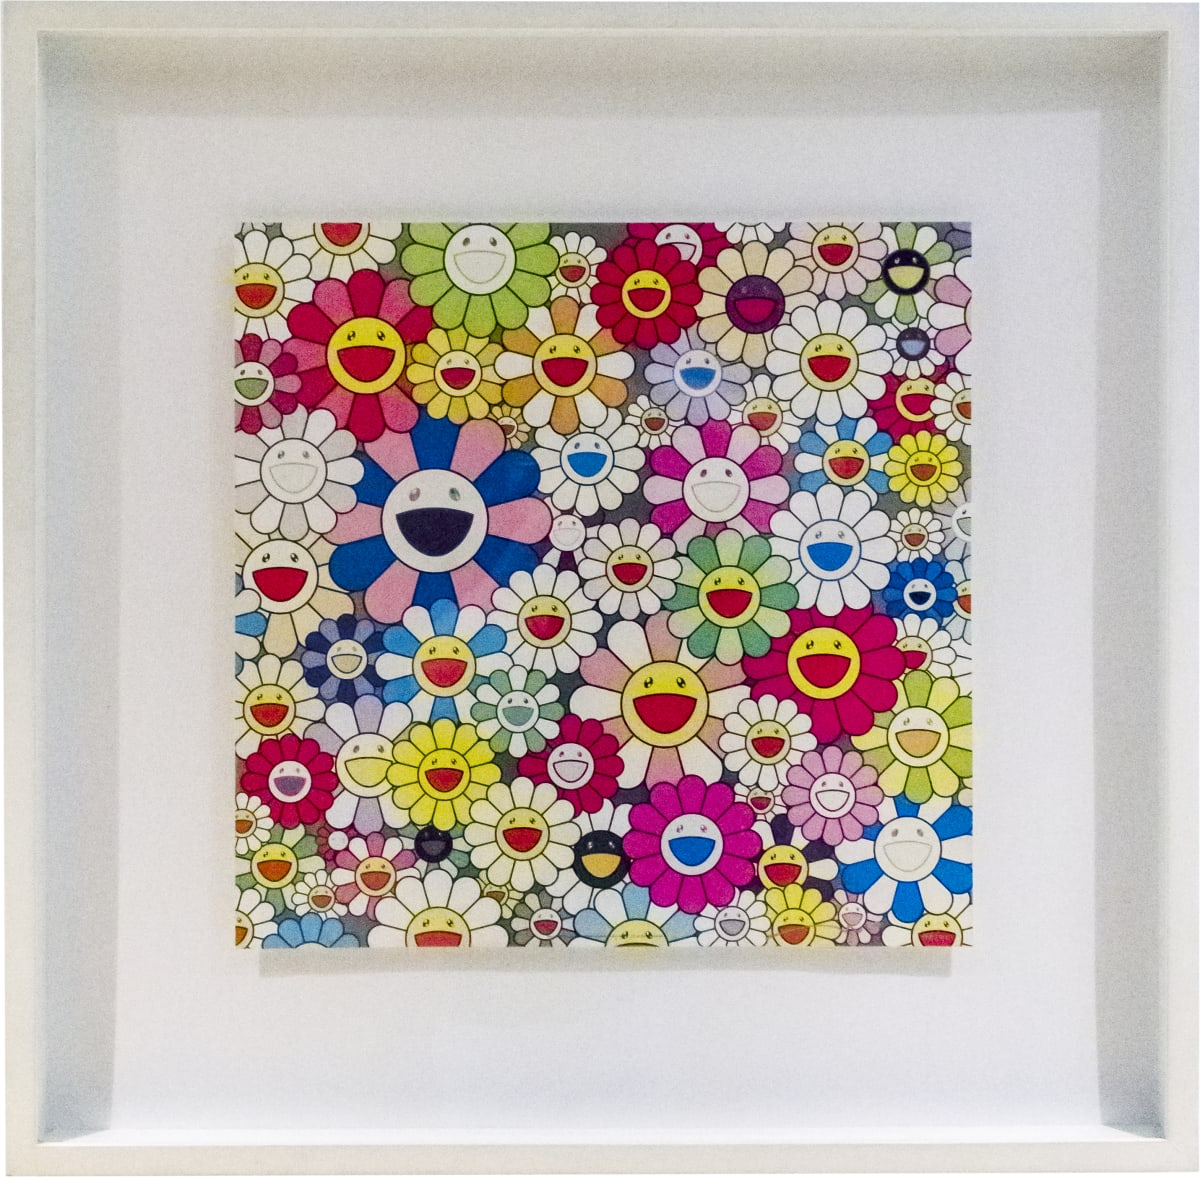 Takashi Murakami, Such Cute Flowers, 2011